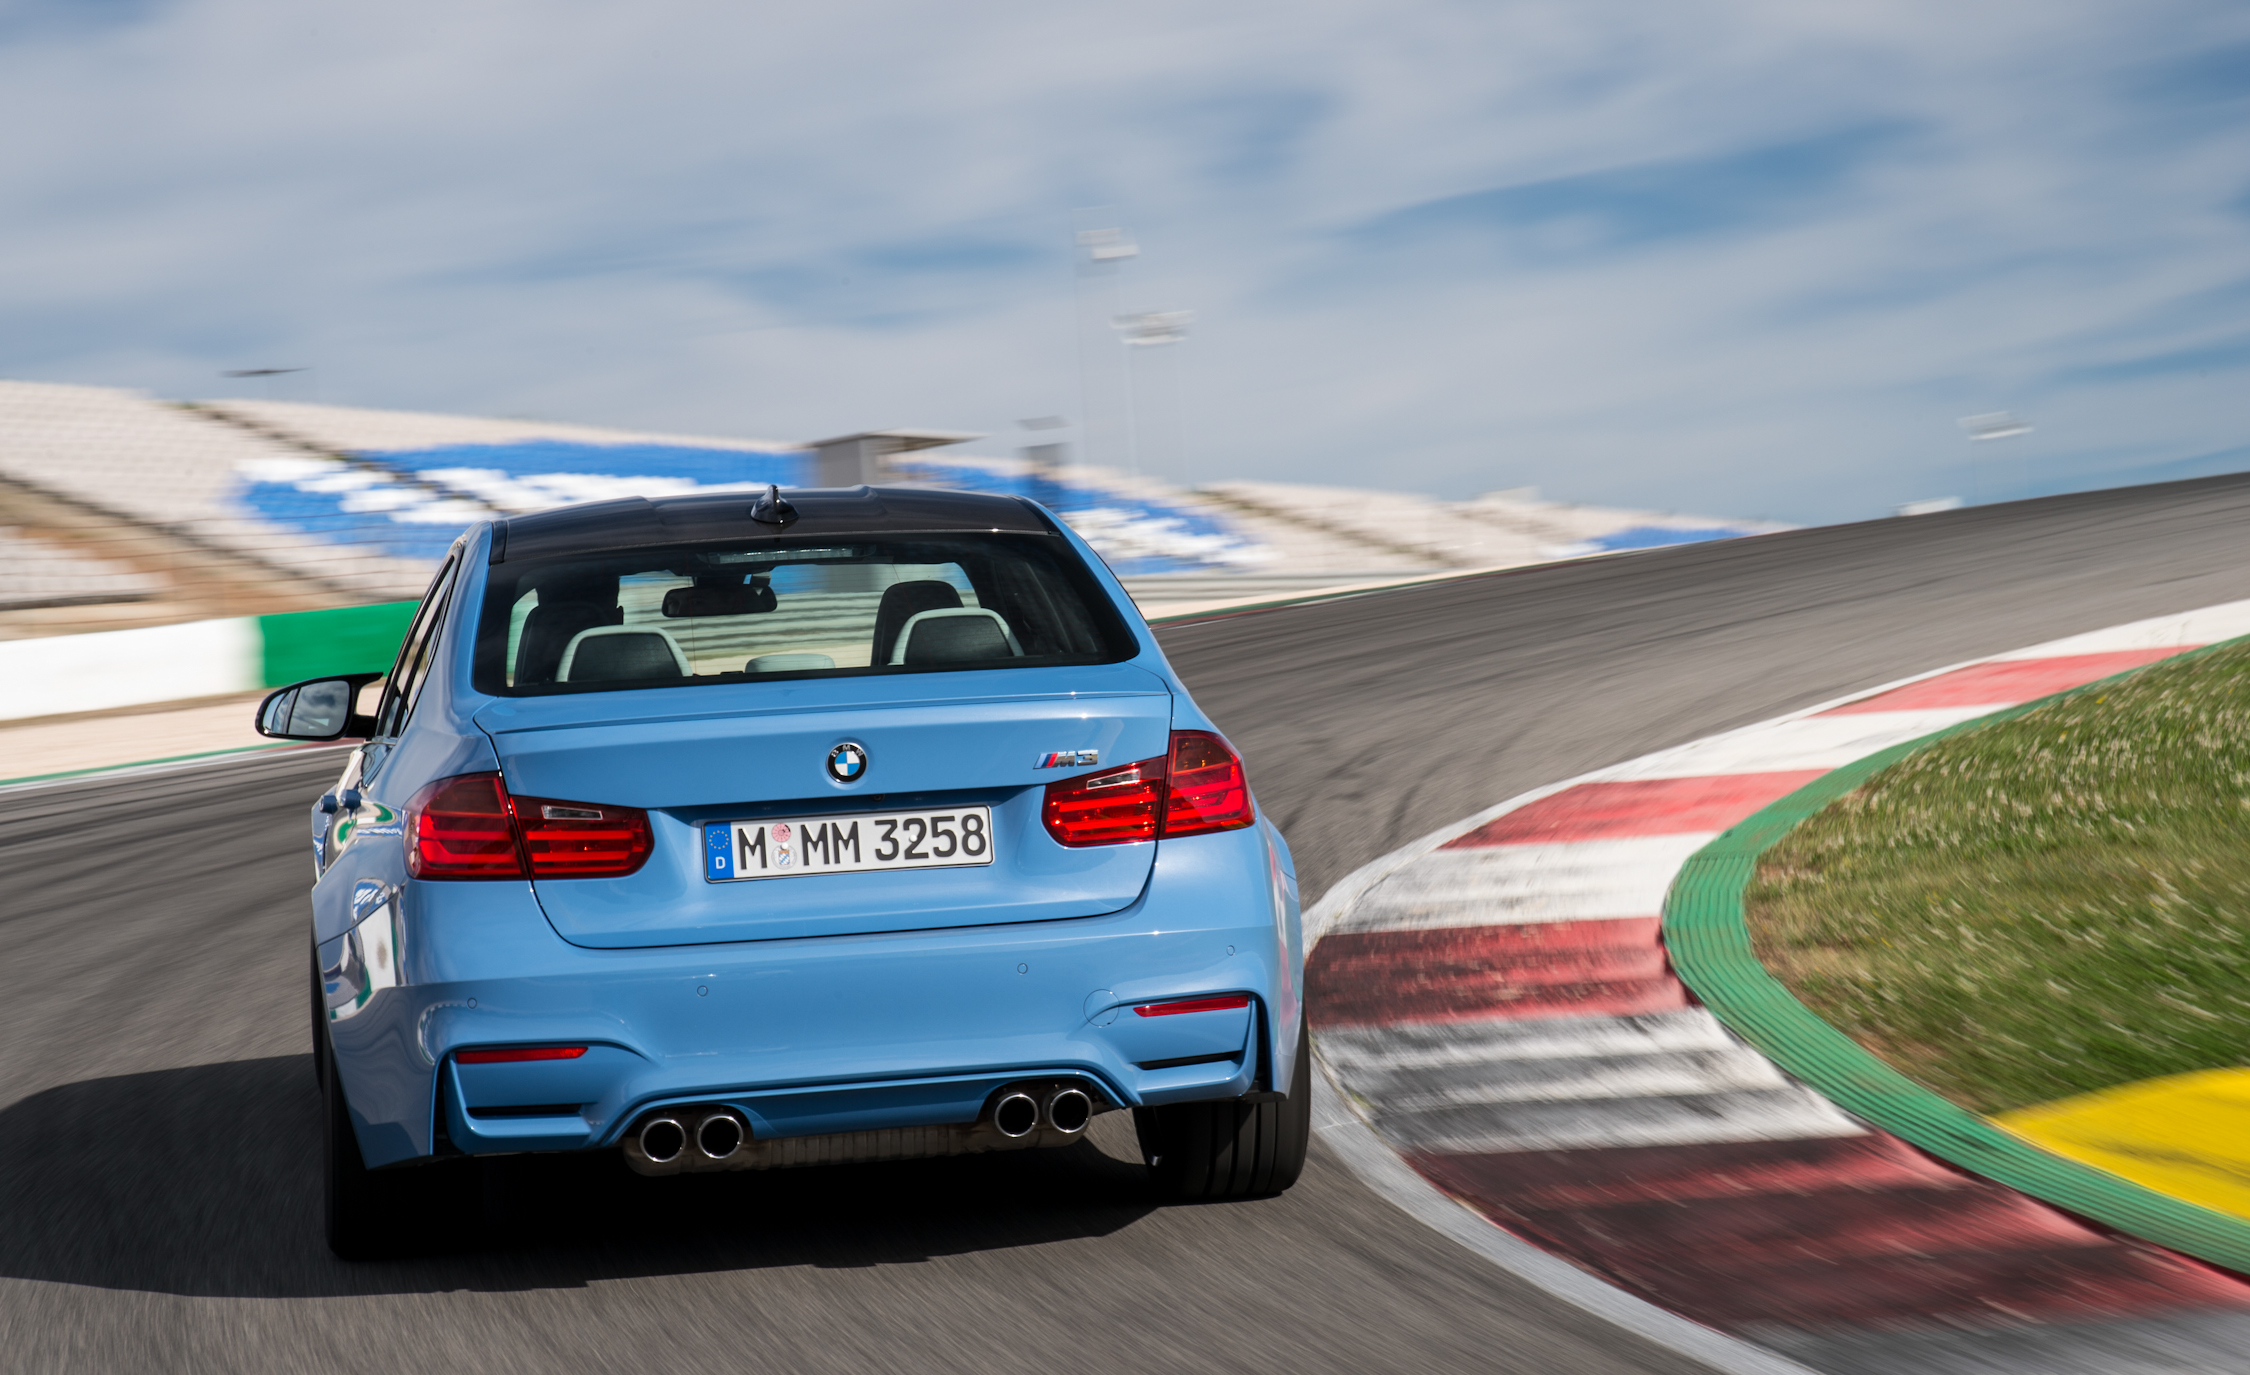 2015 BMW M3 Performance Rear View